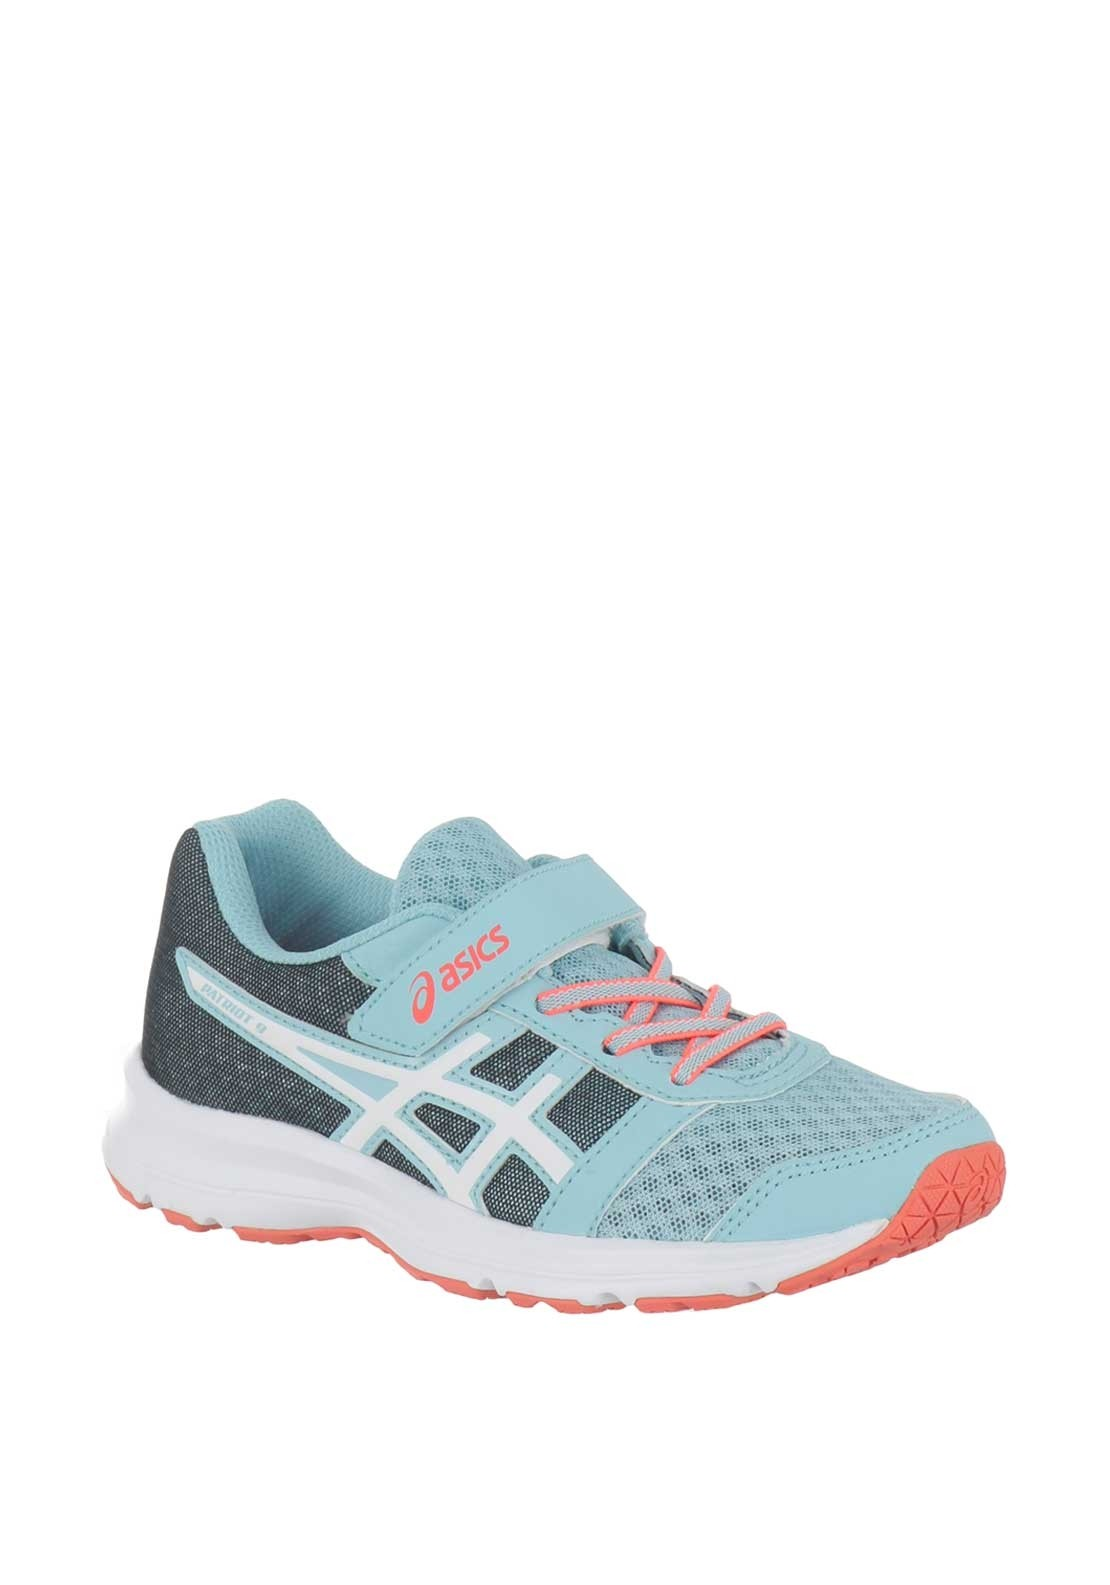 Descarga accesorios Colectivo  asics patriot 9 running shoes ladies Shop Clothing & Shoes Online